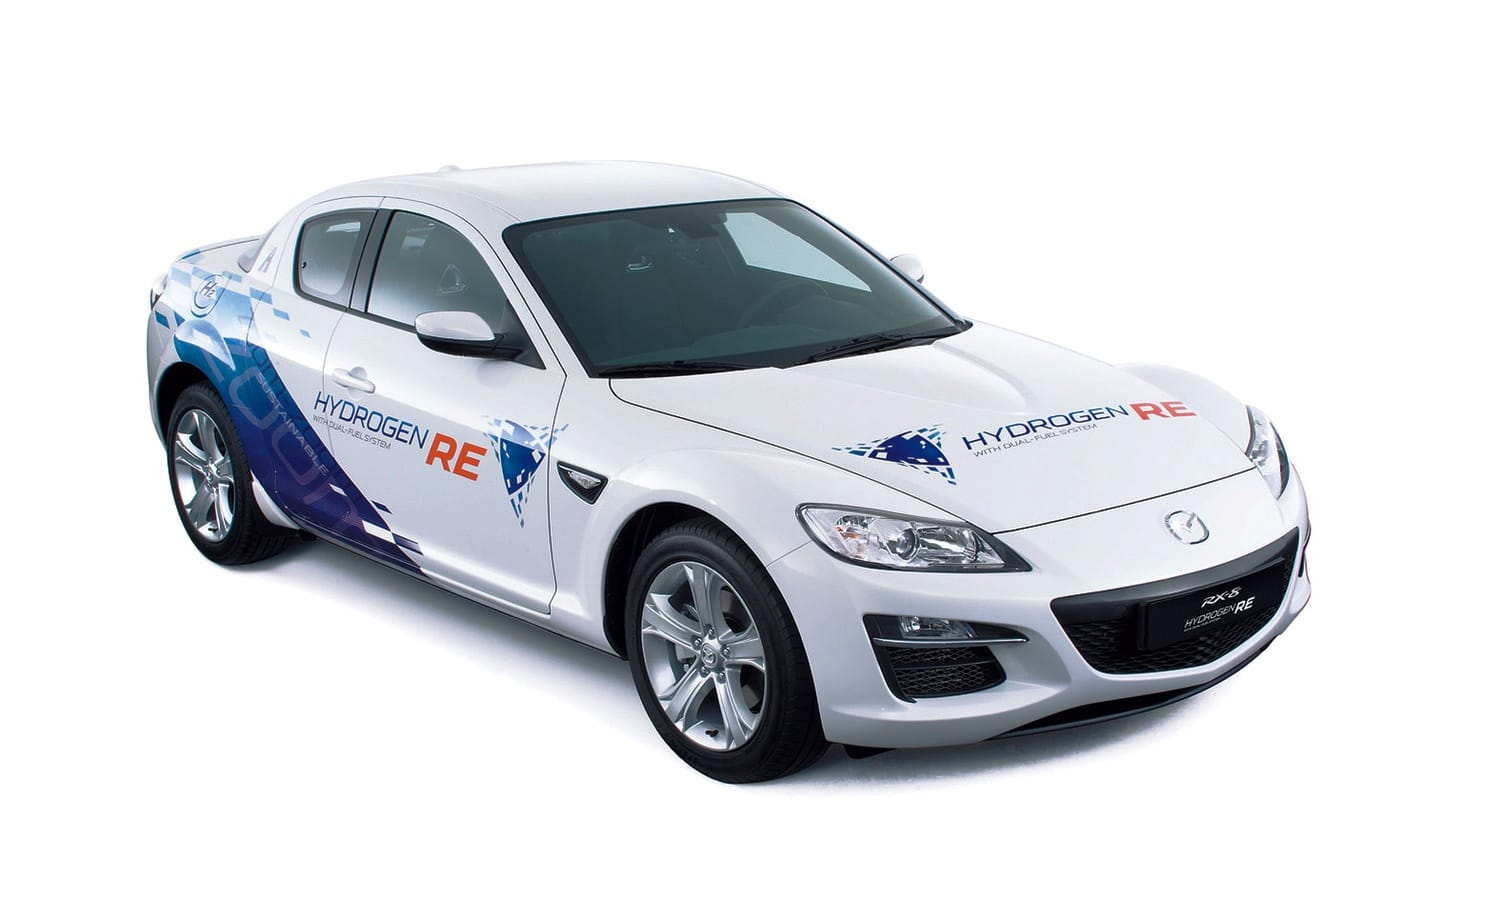 Mazda RX-8 Hydrogen RE for Norway